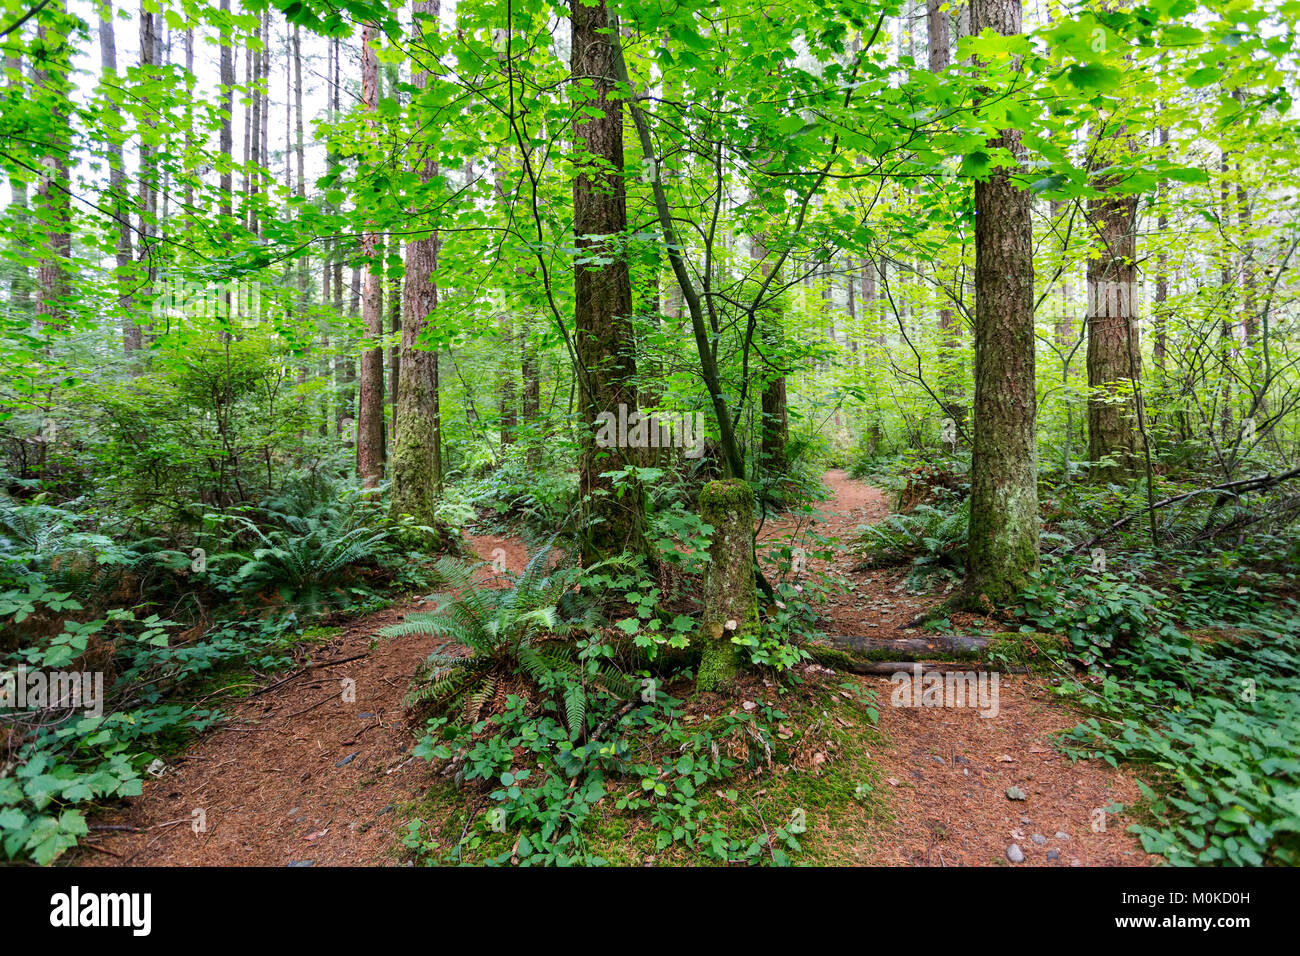 Green Timbers Forest with two trails leading in different directions; Surrey, British Columbia, Canada - Stock Image